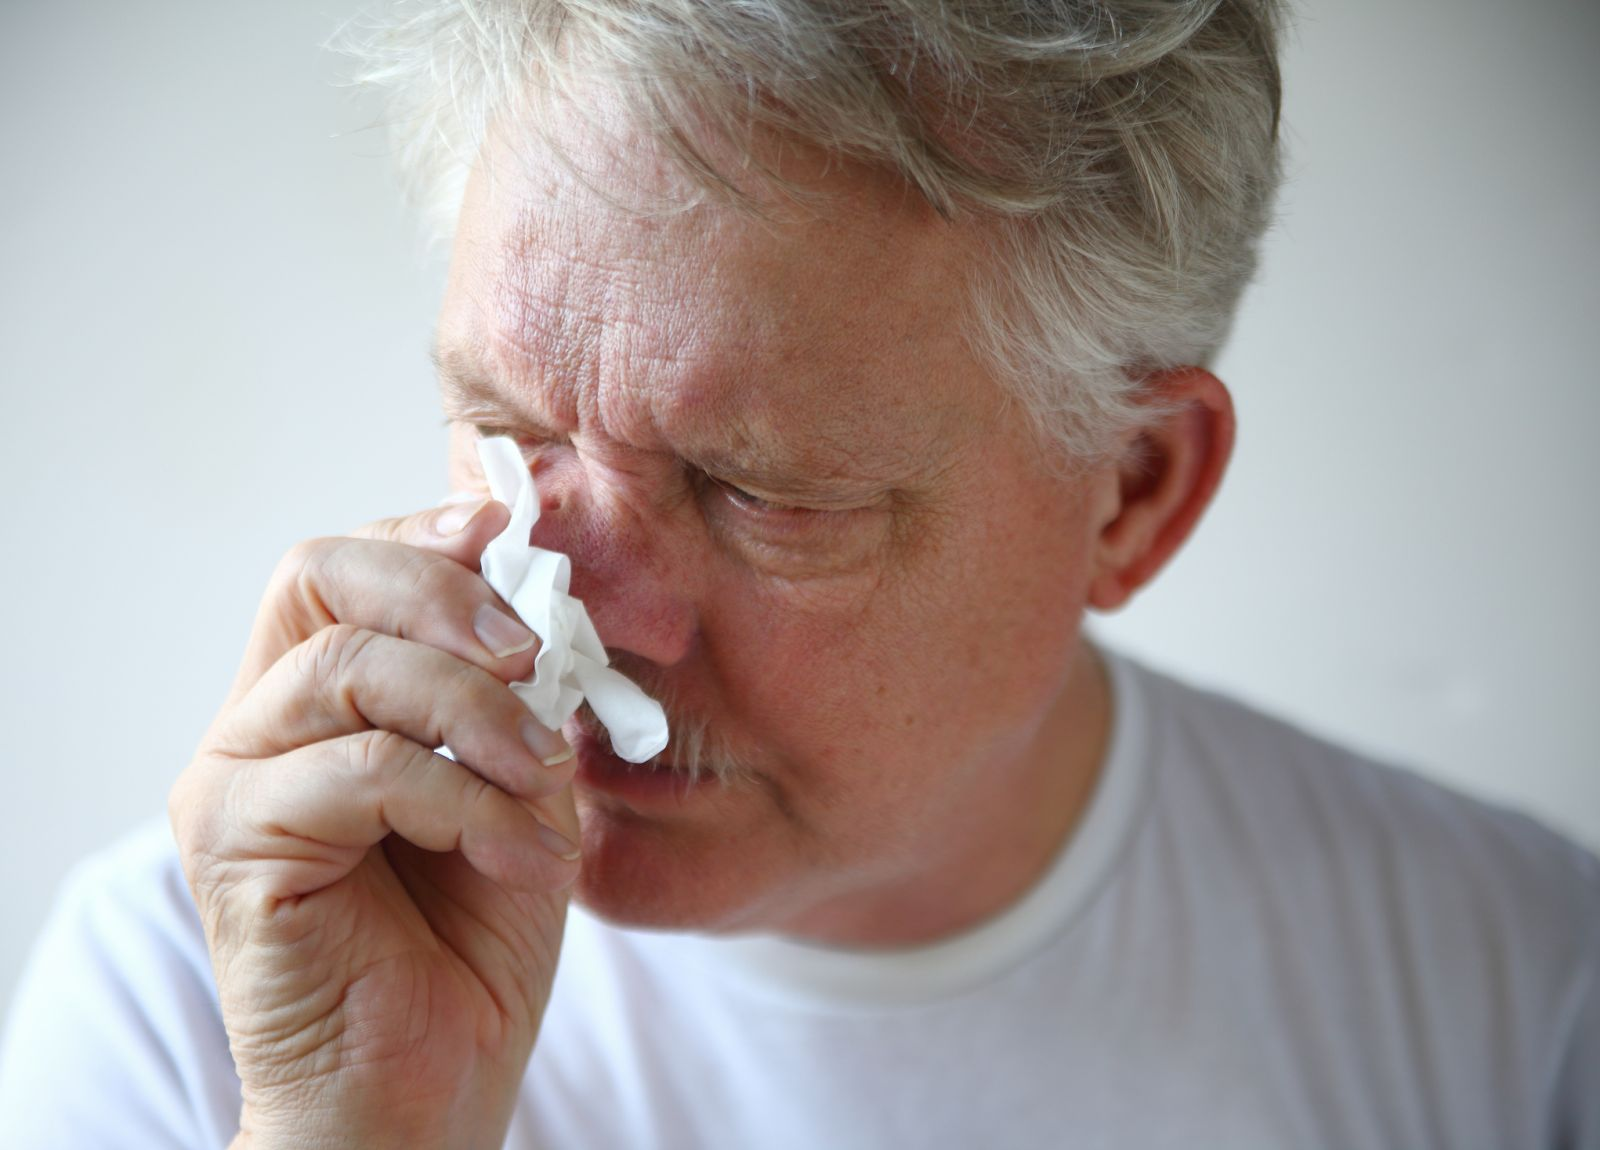 Treatments for post-nasal drip - Harvard Health